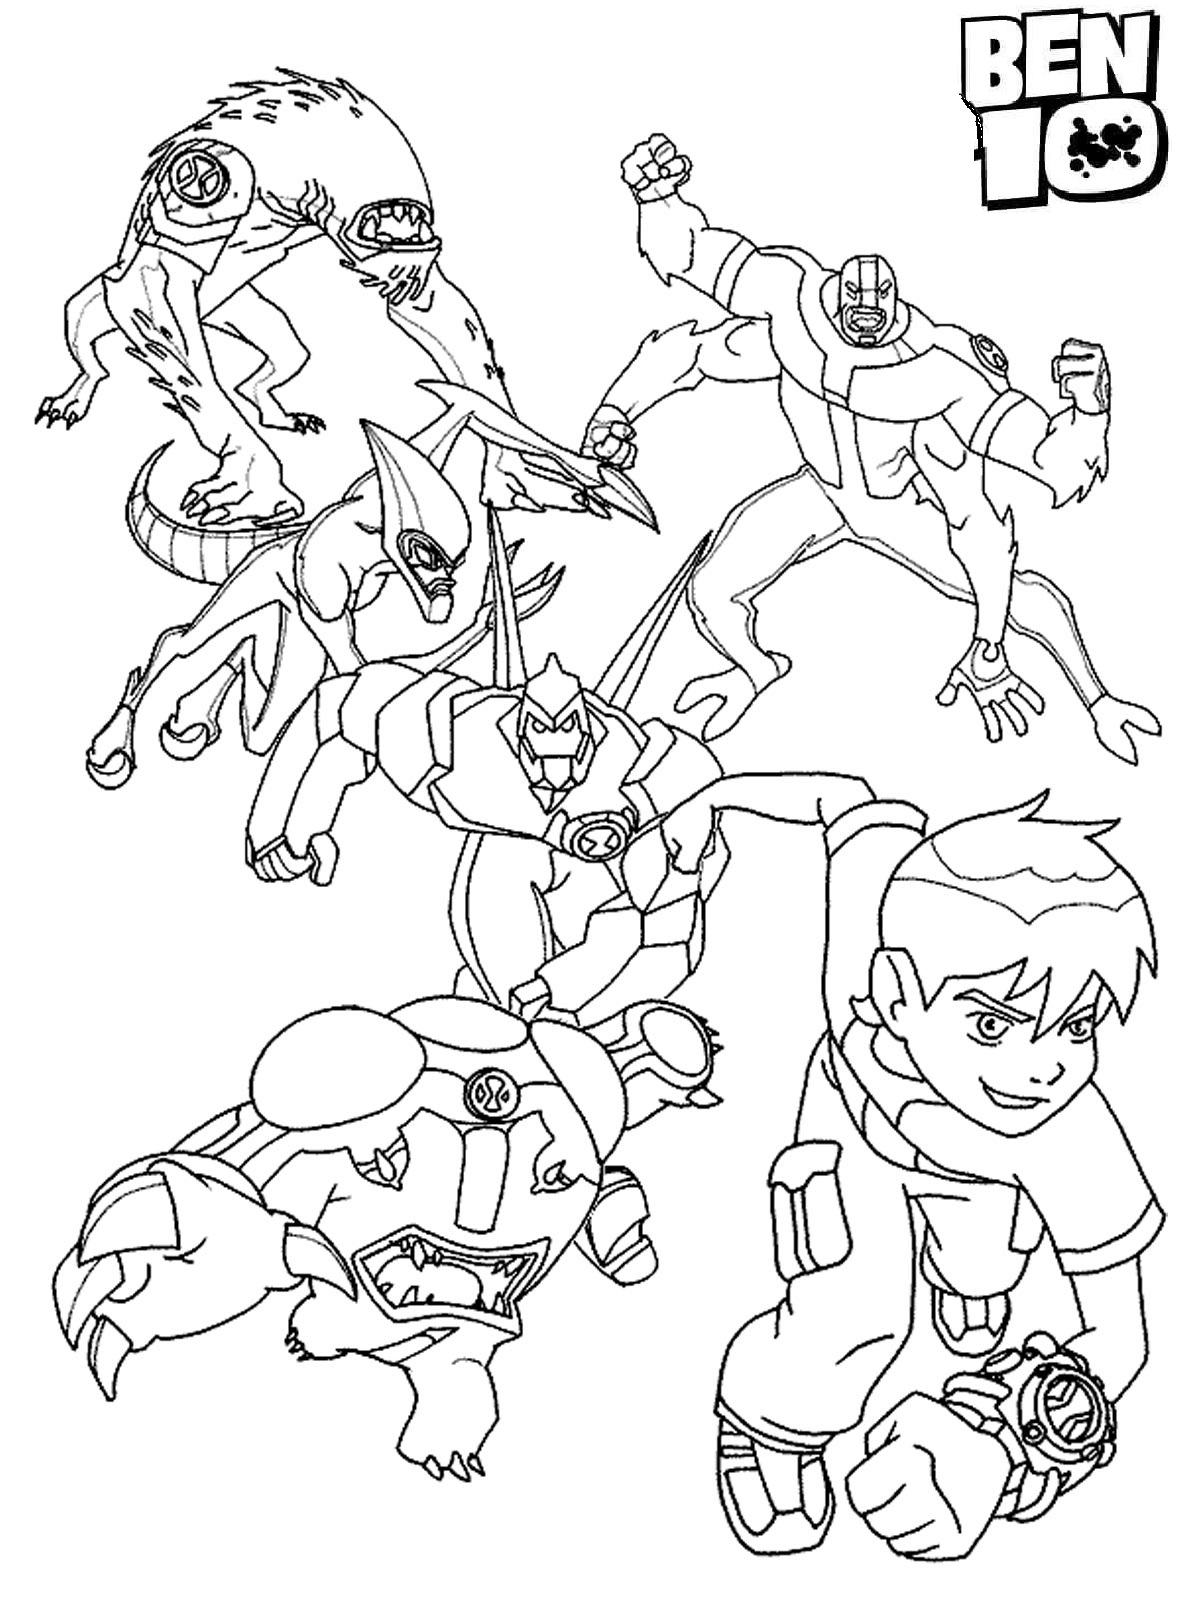 ben 10 coloring pictures ben 10 coloring pages minister coloring ben pictures coloring 10